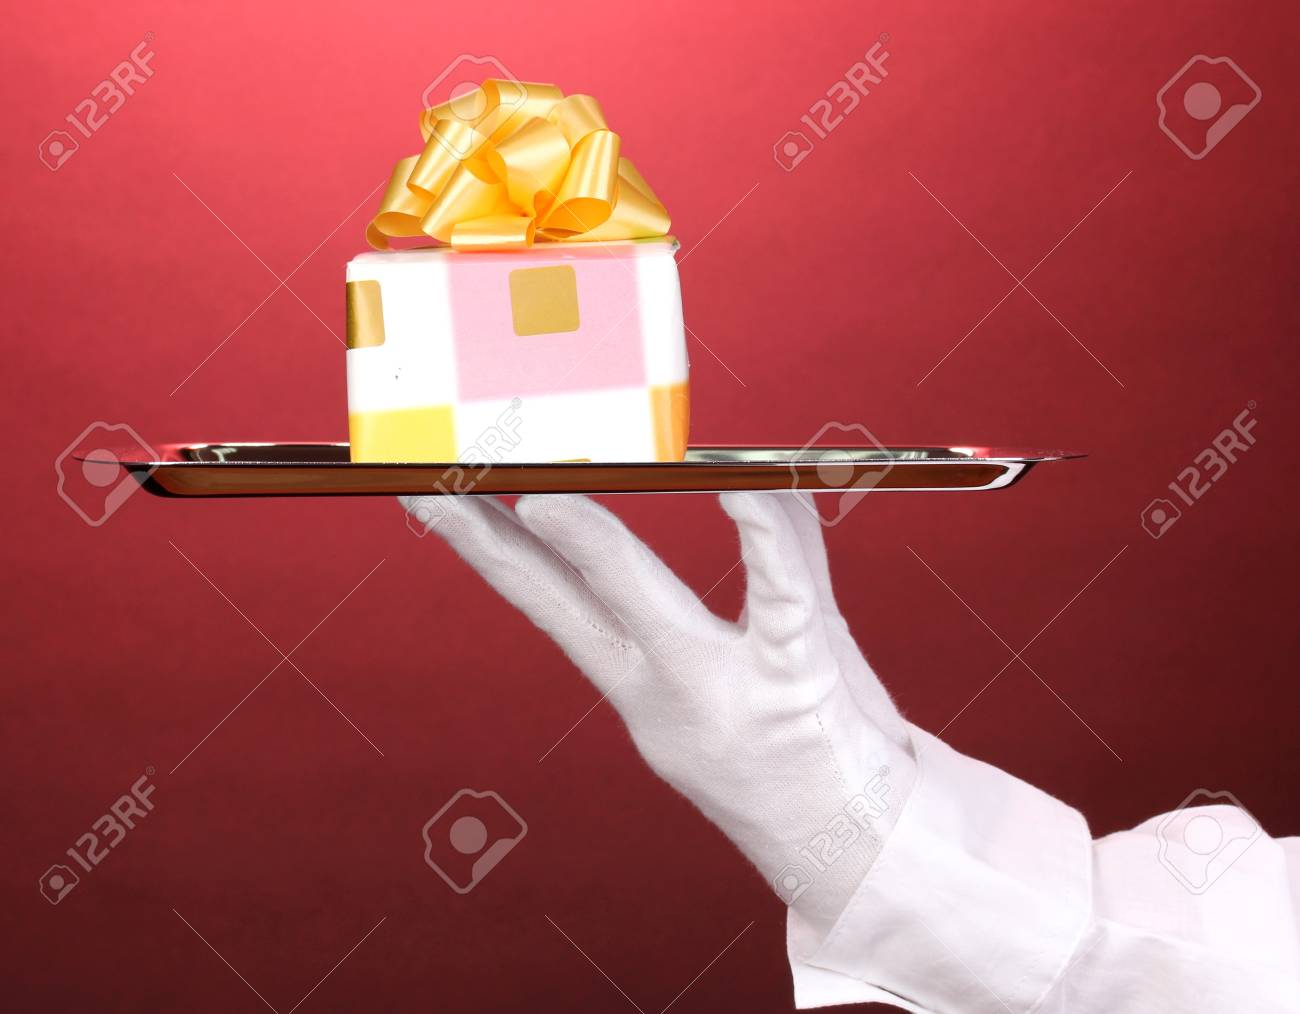 Hand in glove holding silver tray with giftbox on red background Stock Photo - 14171111